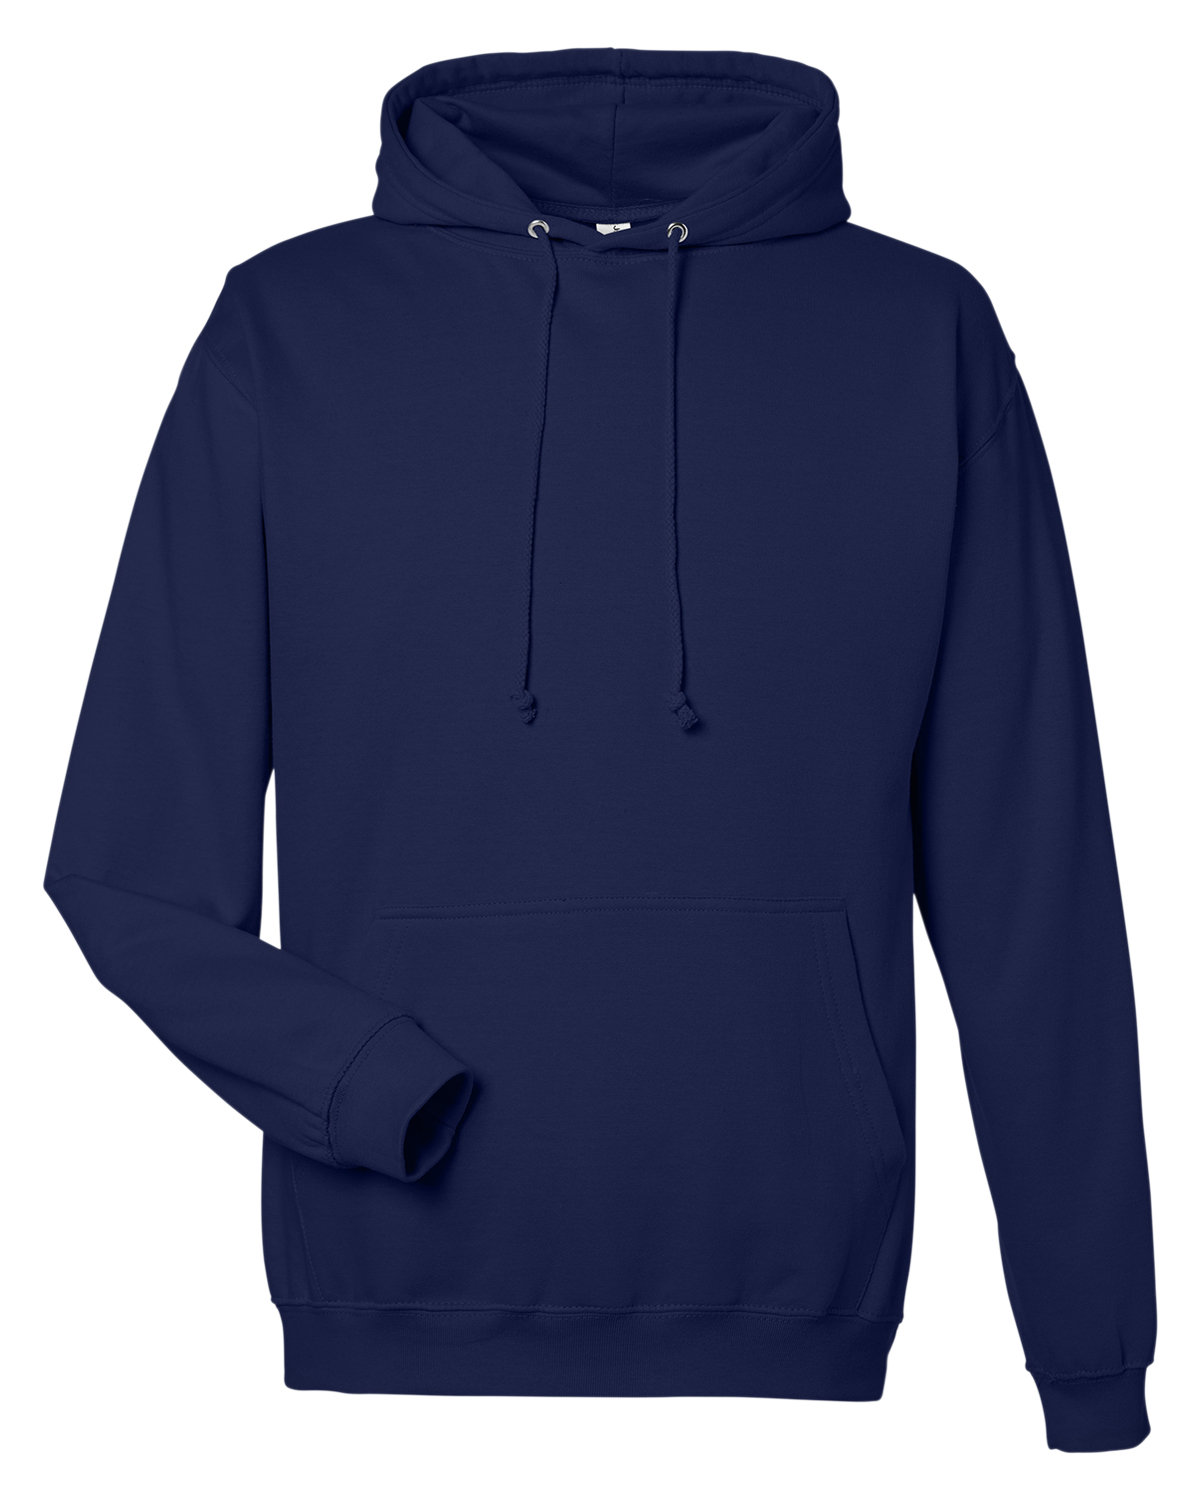 Just Hoods By AWDis Men's 80/20 Midweight College Hooded Sweatshirt OXFORD NAVY